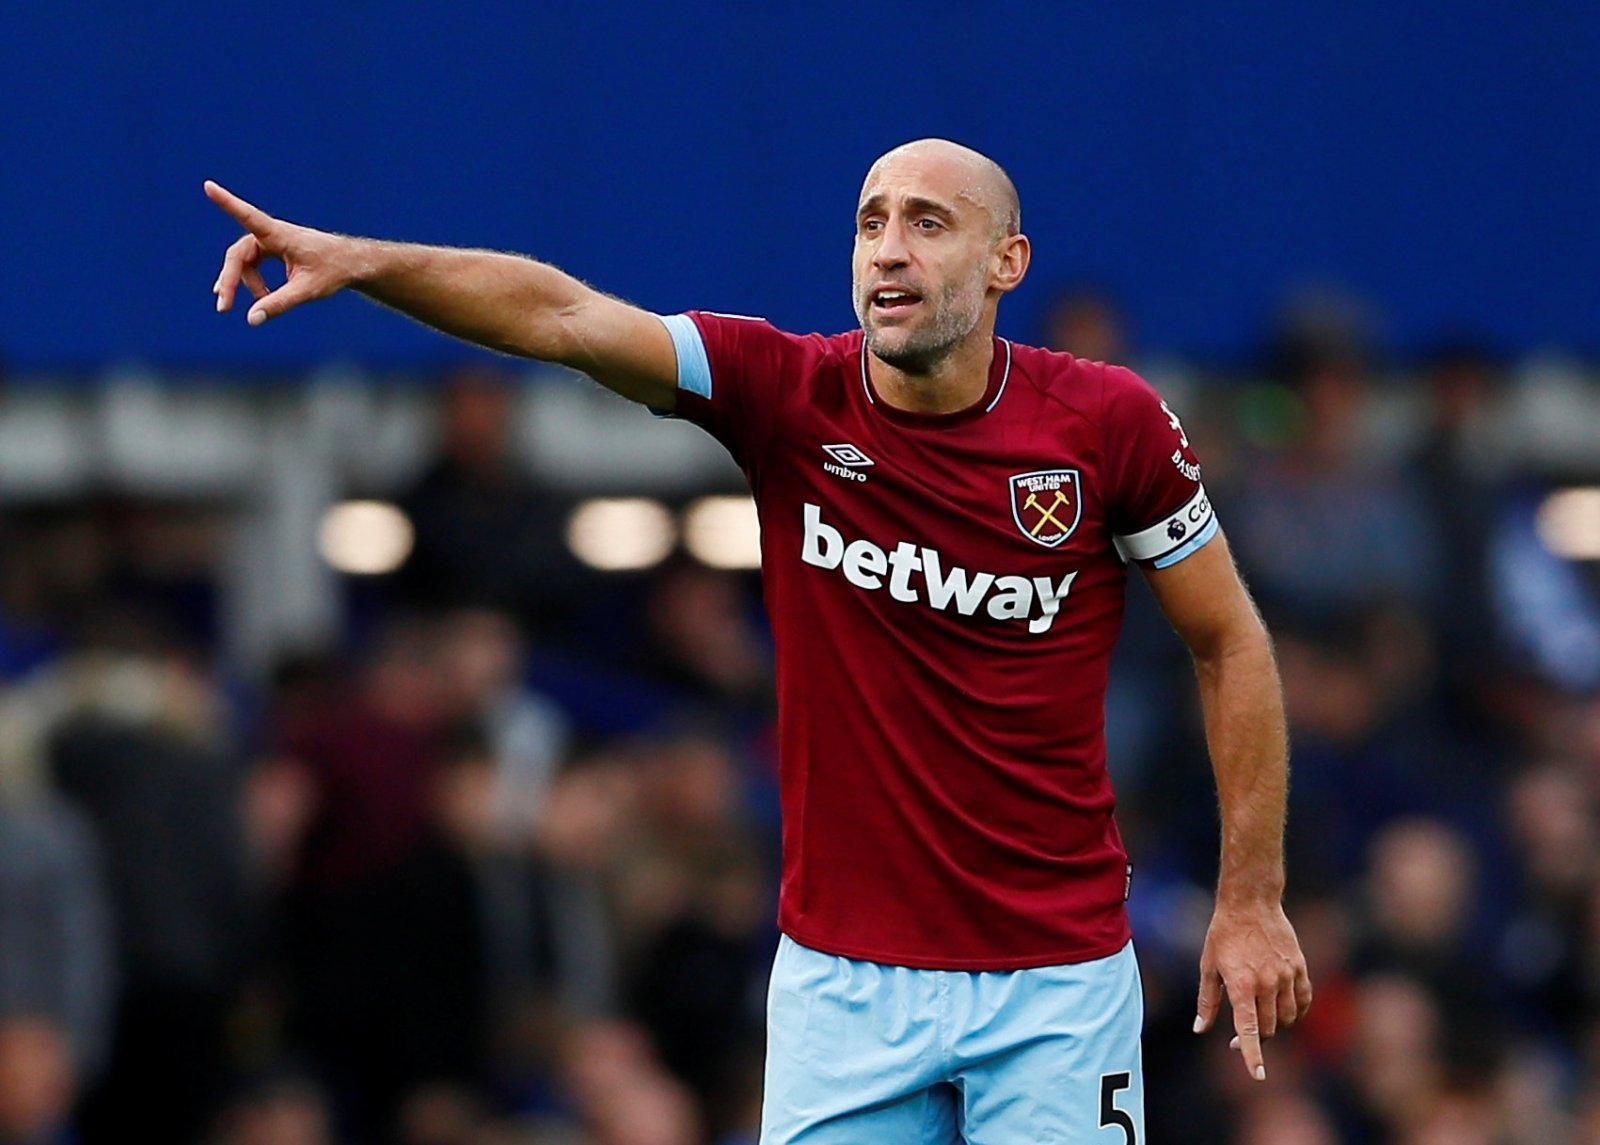 West Ham fans on Twitter plead for Zabaleta to stay following Fulham display